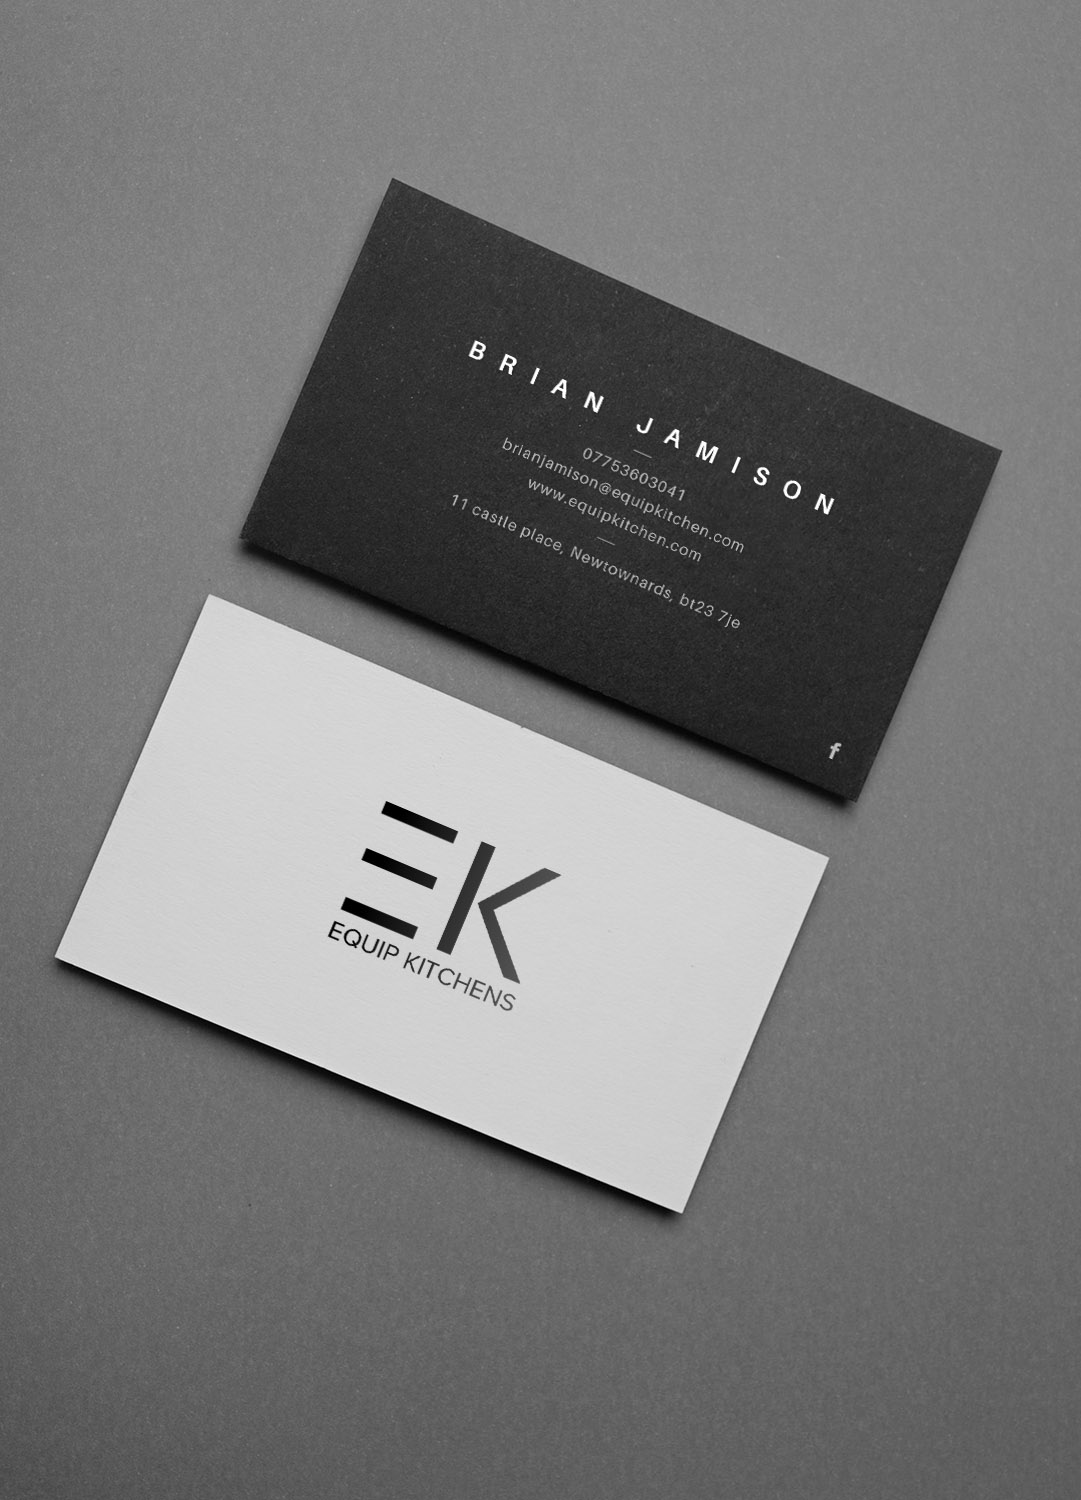 Professional Upmarket Interior Design Business Card Design For Ek Equip Kitchens By Sandaruwan Design 20297245